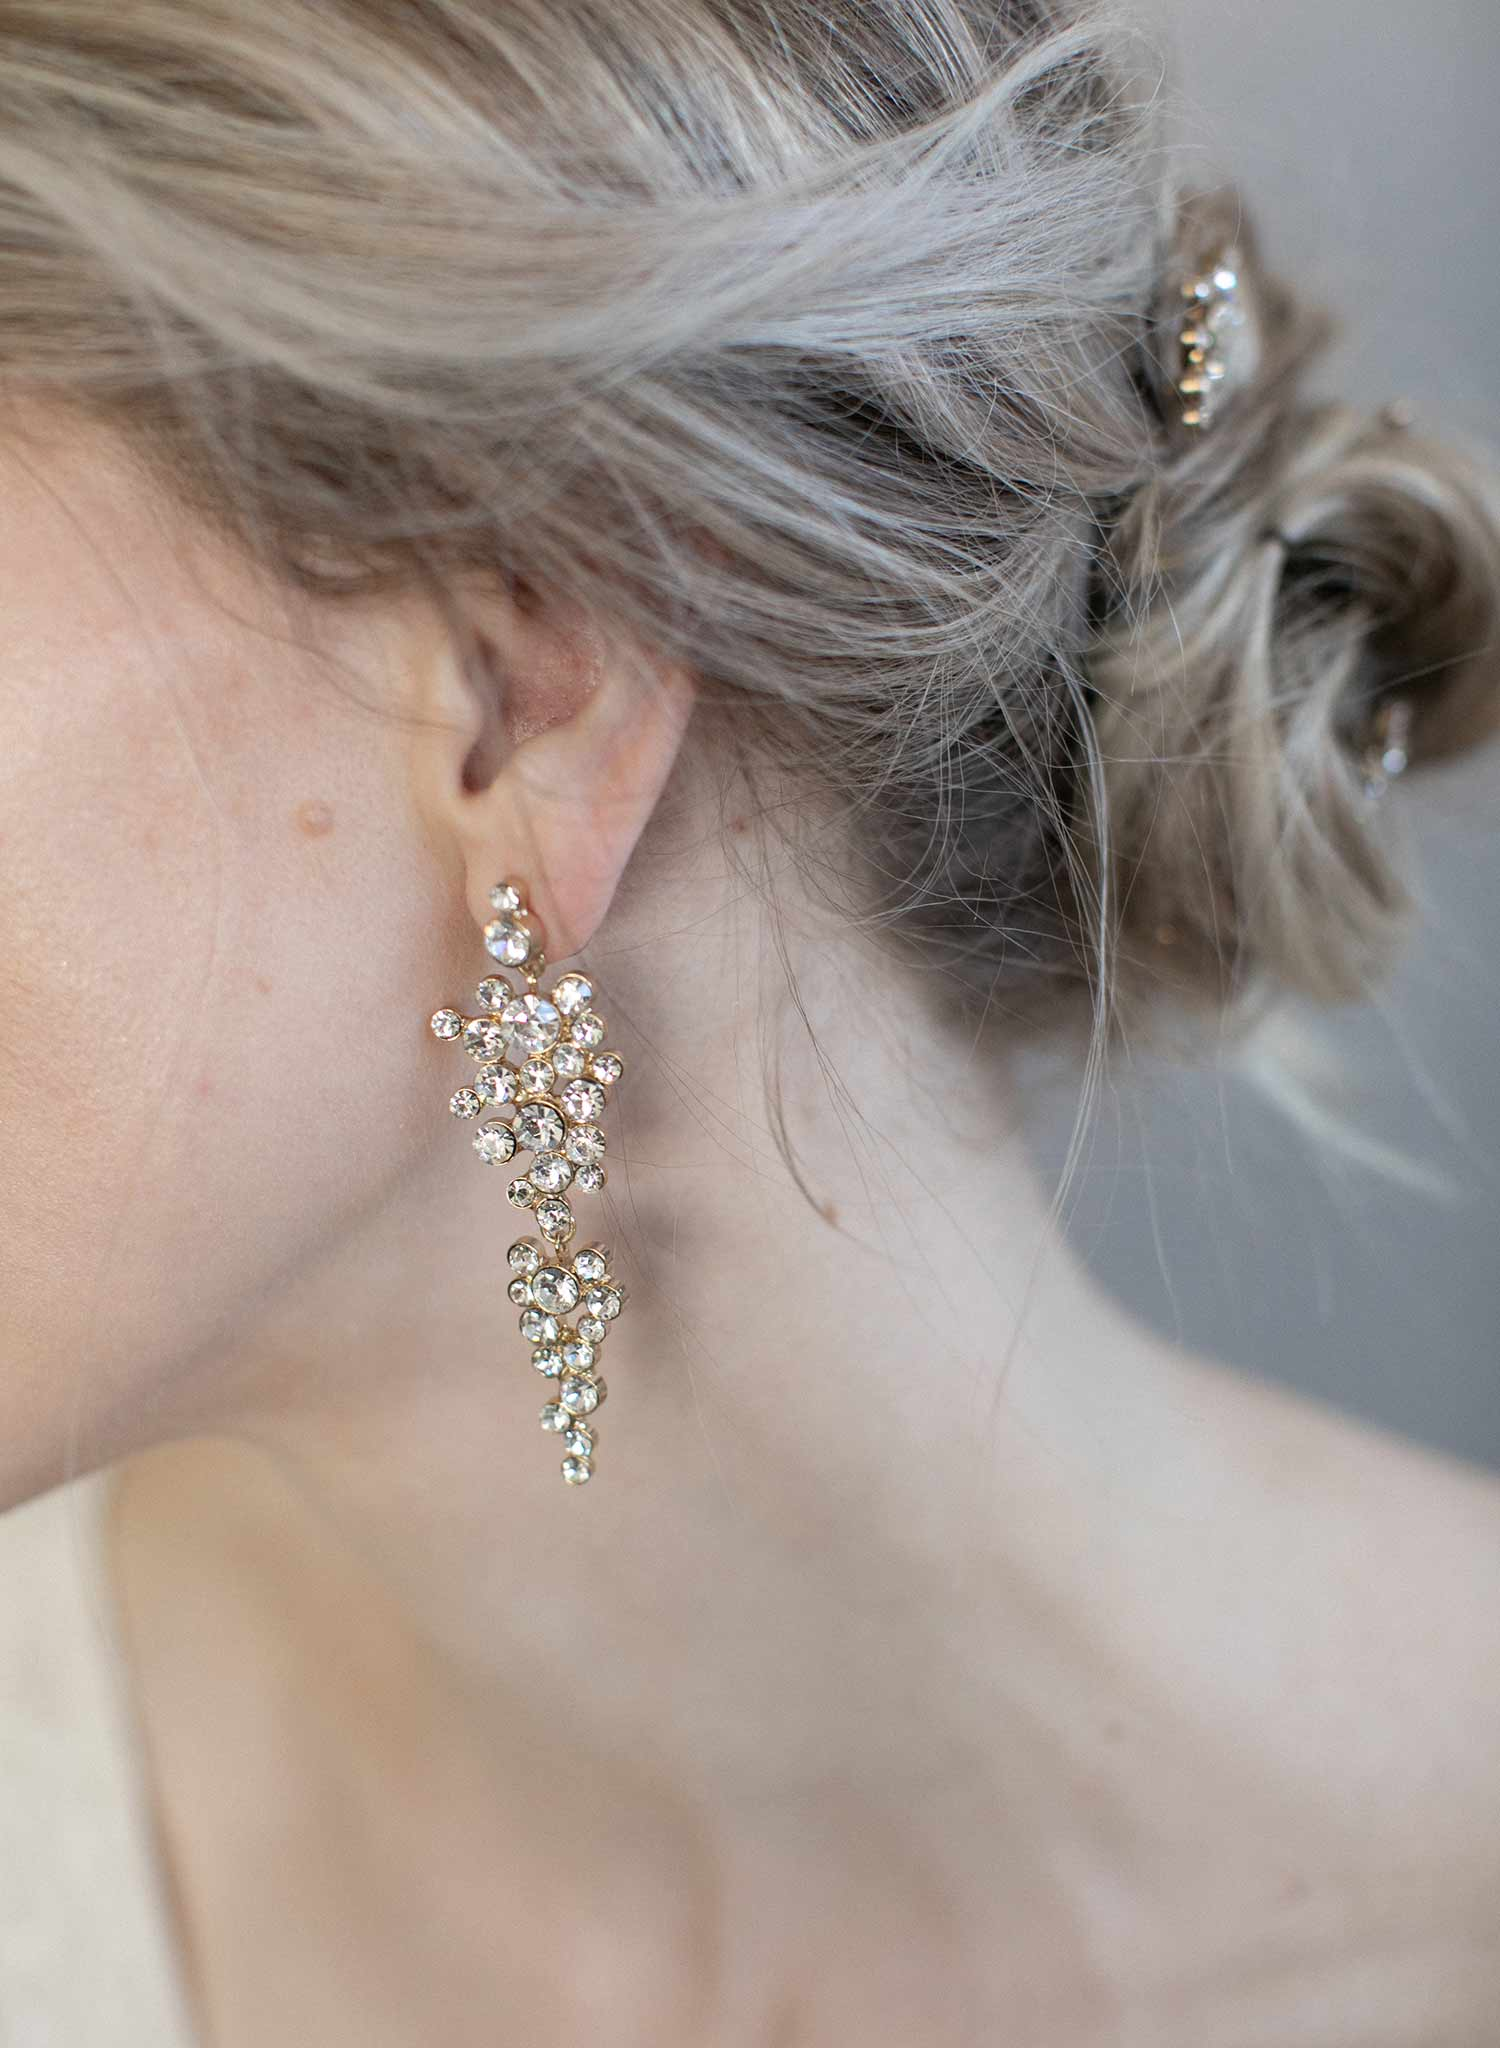 Champagne bubbles drop earrings - Style #976